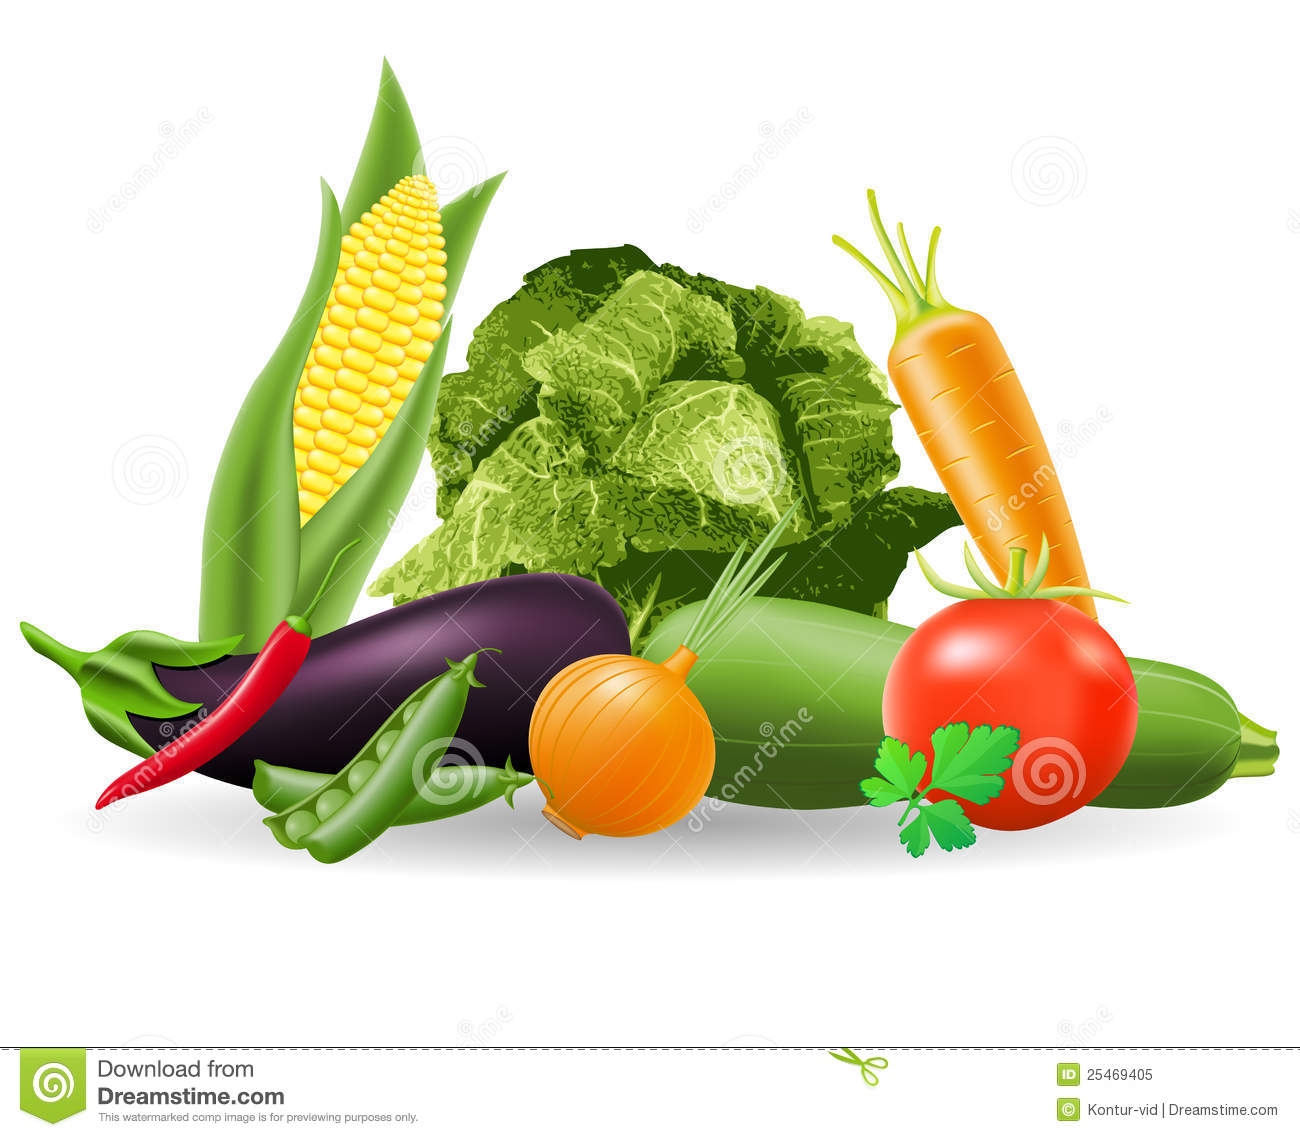 free vector vegetables clipart - photo #12